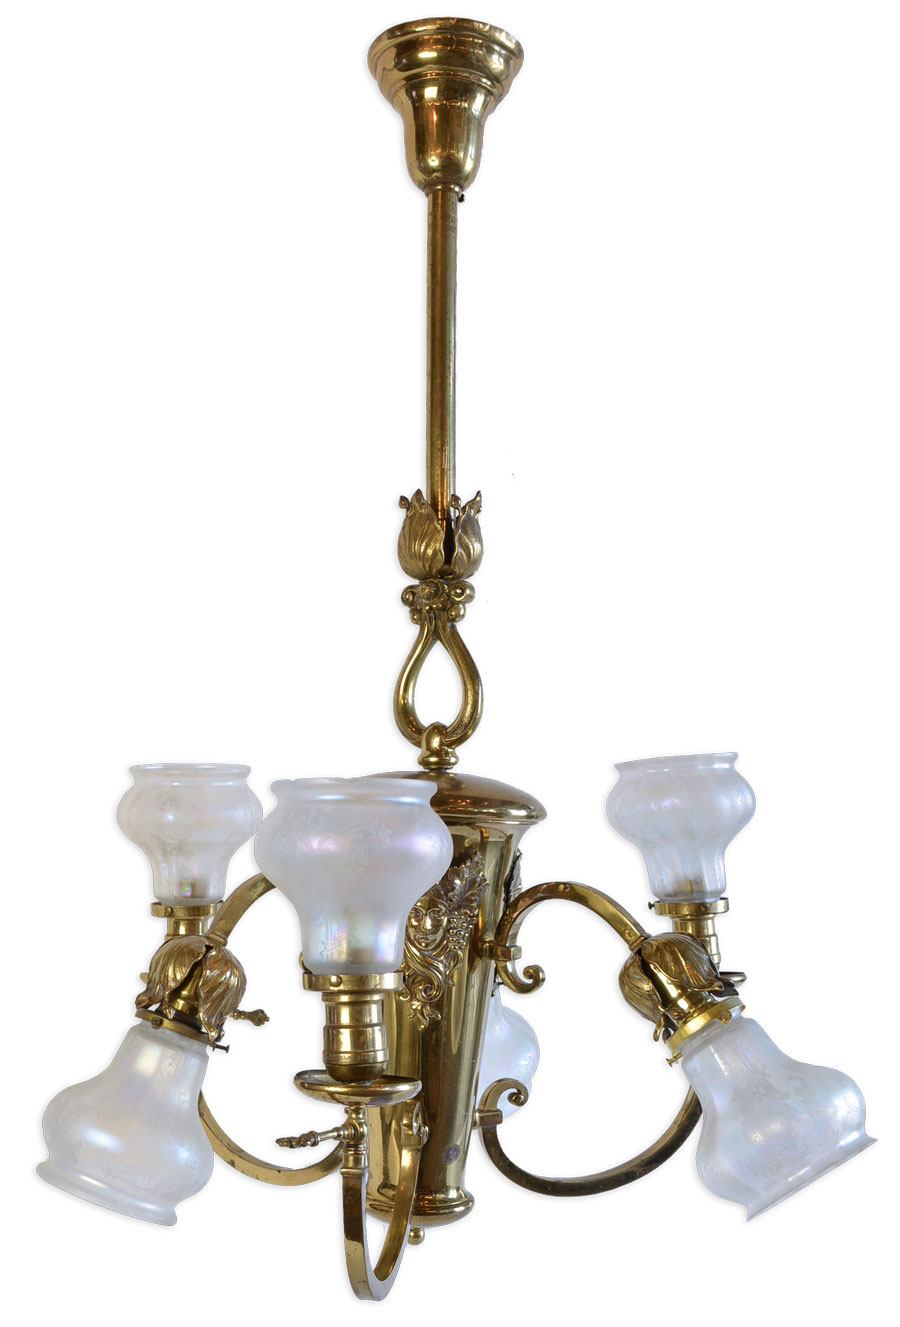 SIX-LIGHT POLISHED BRASS CHANDELIER WITH CAMEO